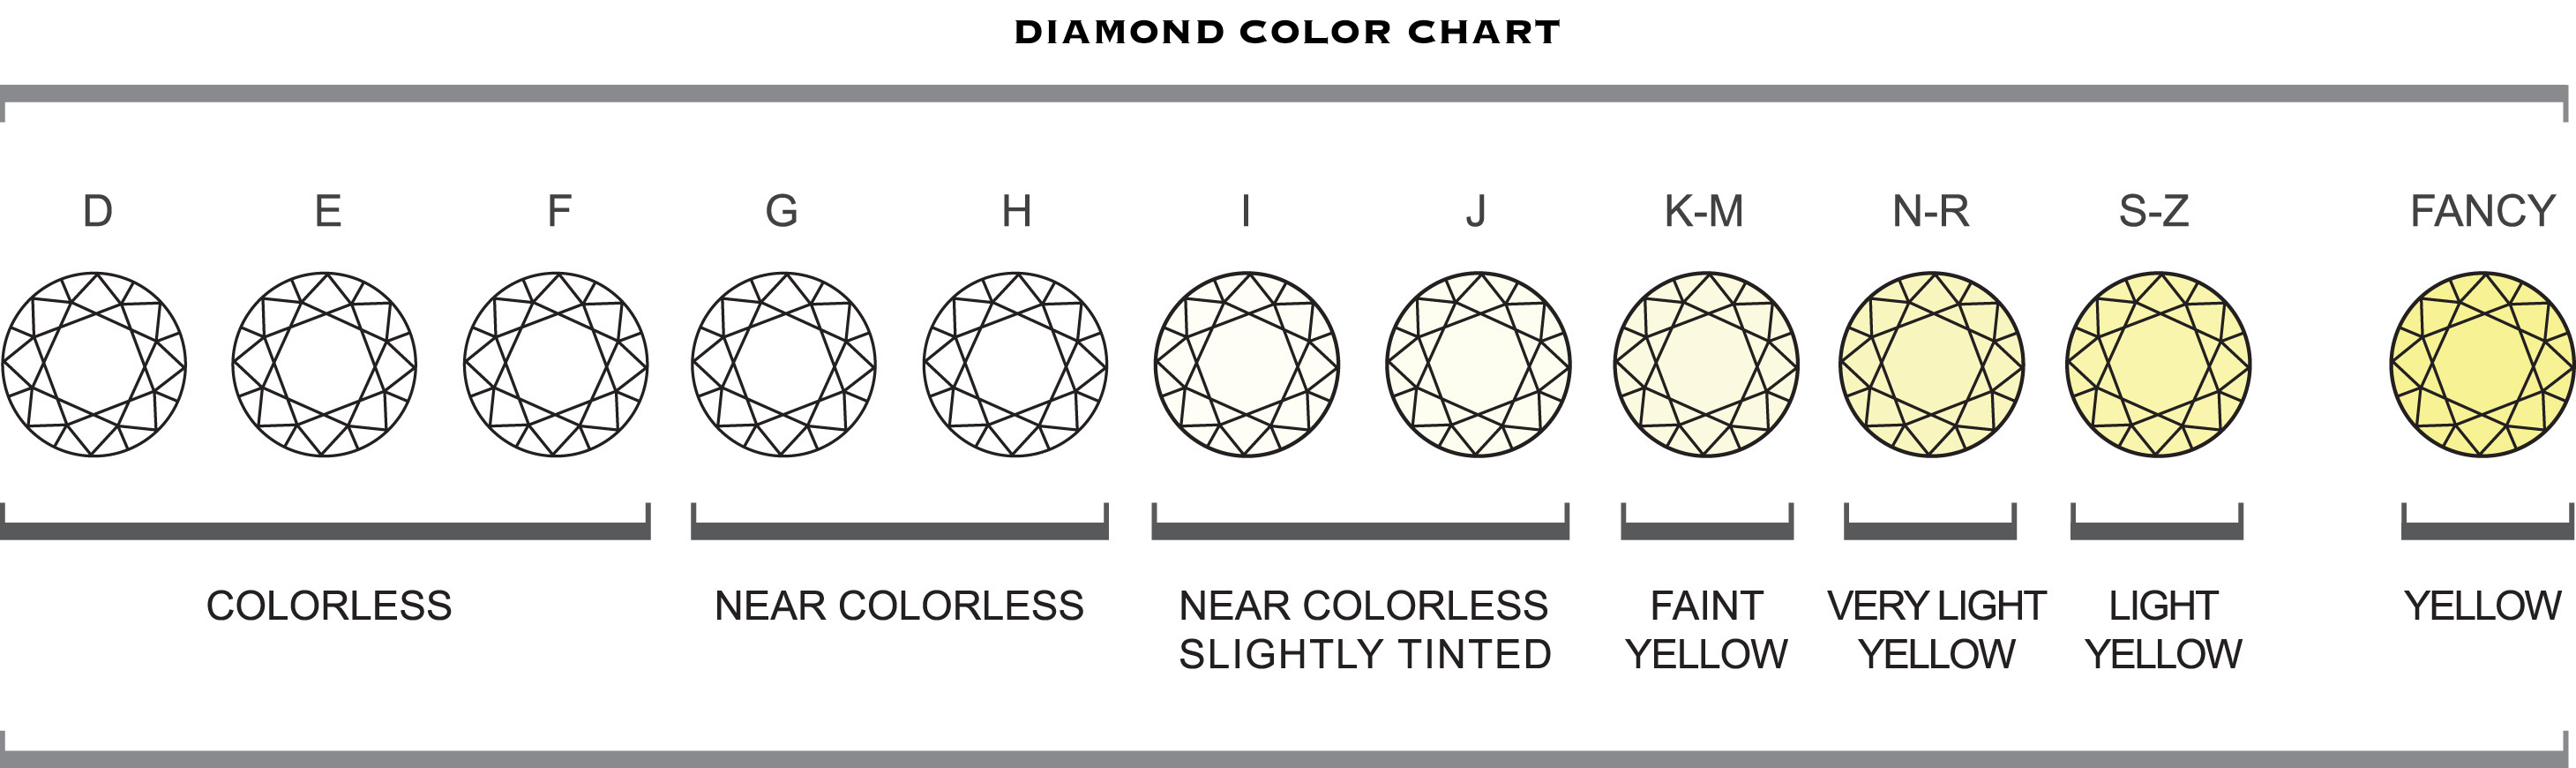 langerman encyclopedia natural about diamond rough definition color diamonds